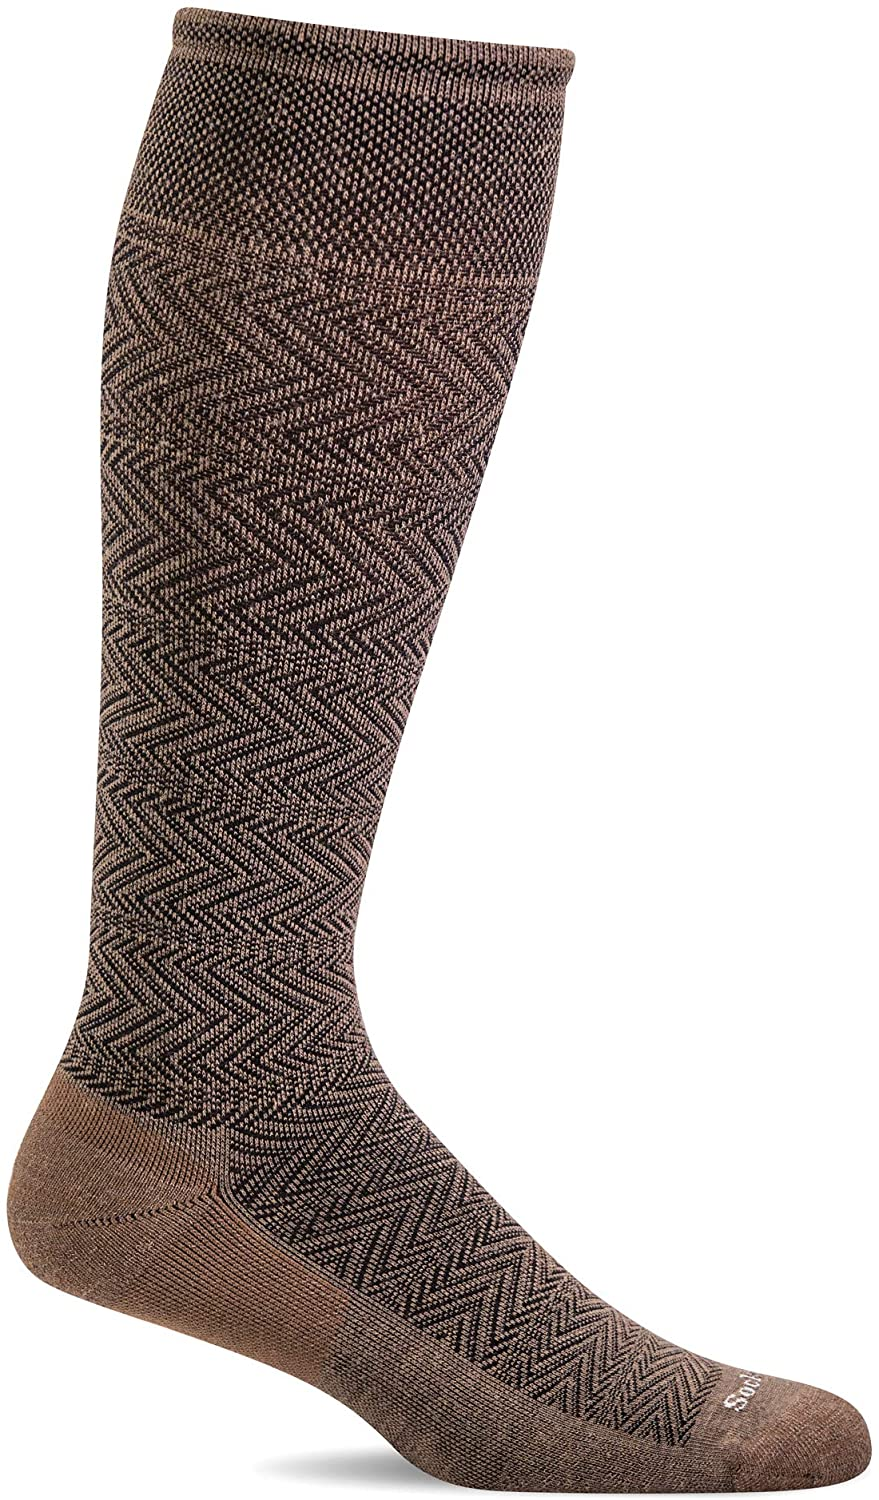 Sockwell Men's Chevron Twill Firm Graduated Compression Sock in Bark from the side